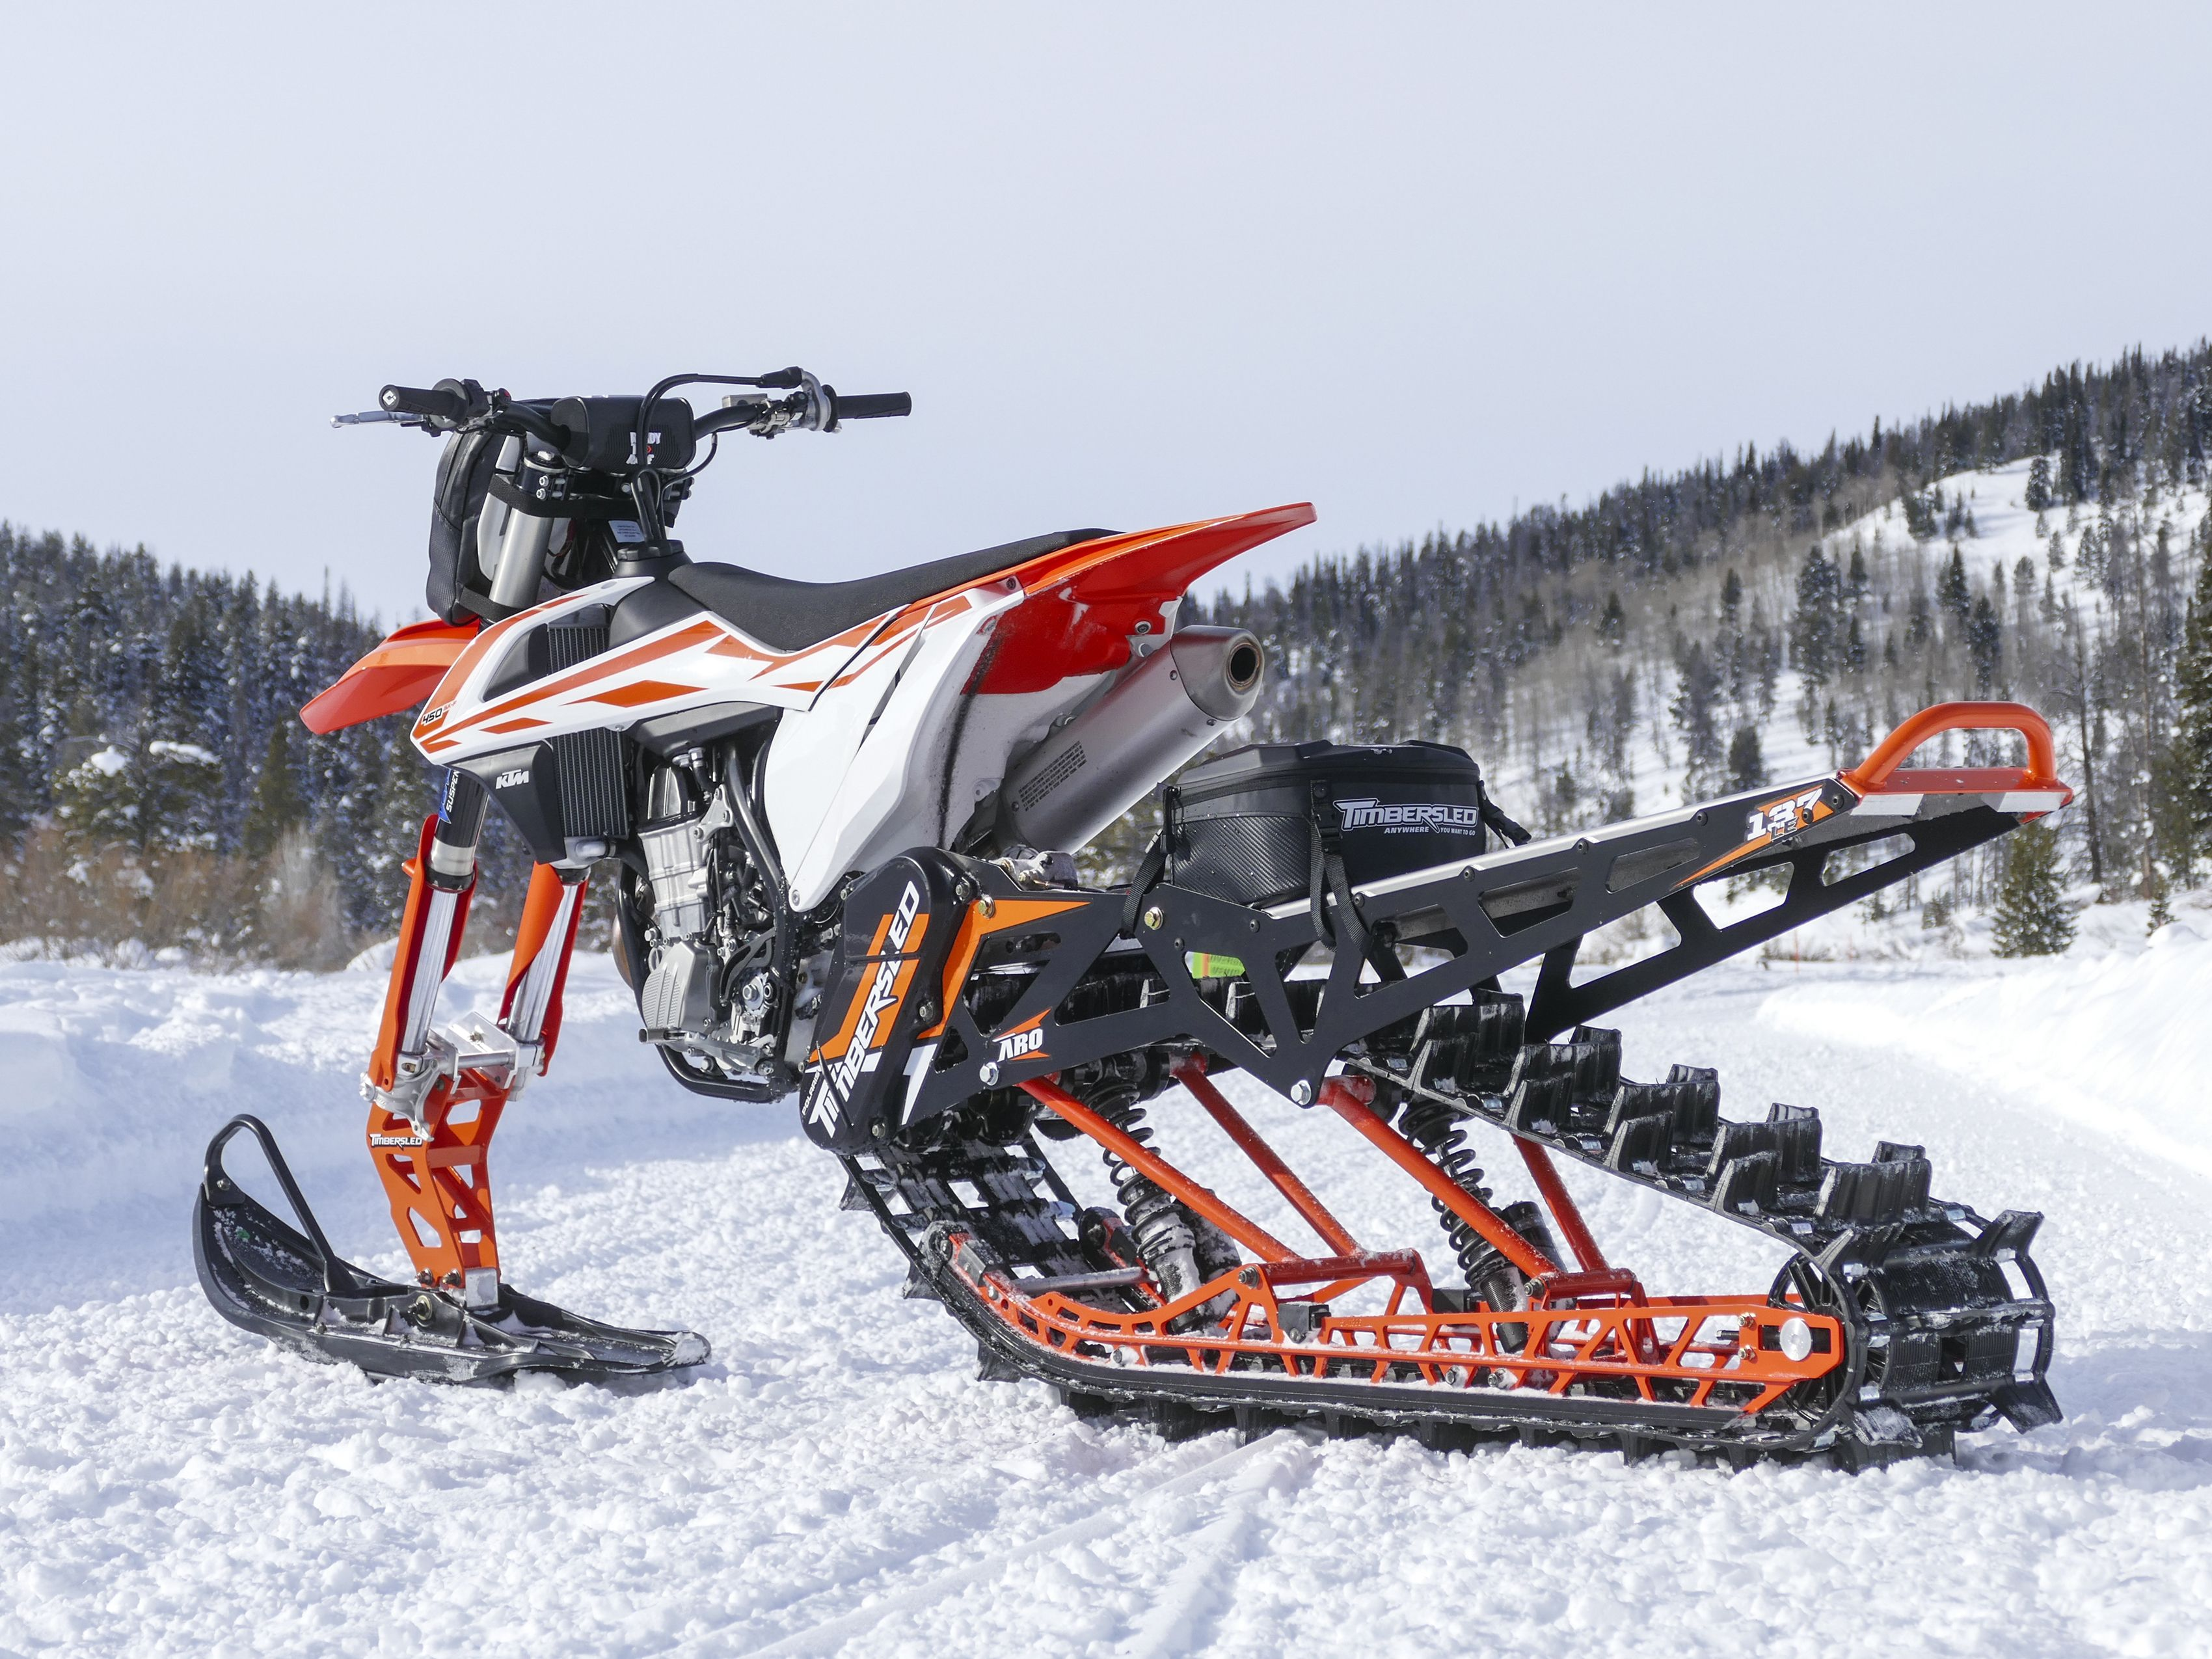 Dirt Bike Snowmobile >> 5 Things To Know About The 2018 Polaris Lineup Maxsled Com